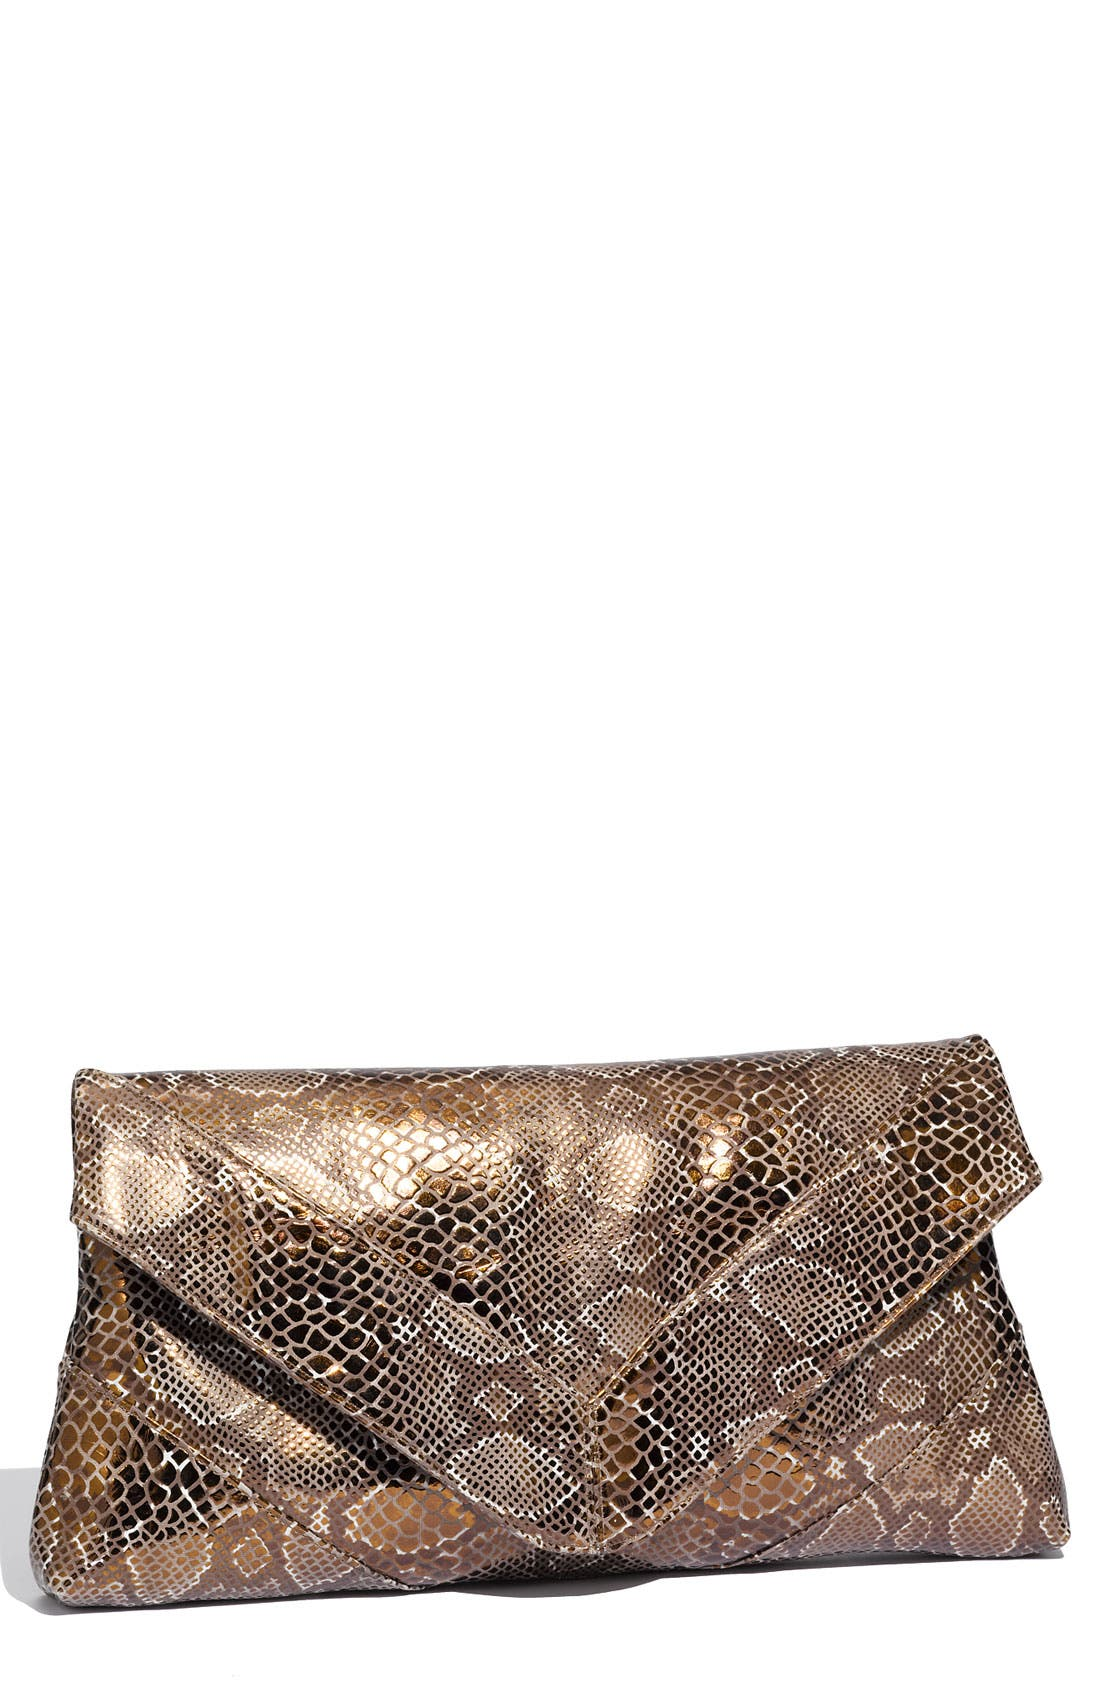 Alternate Image 1 Selected - Foley + Corinna Python Embossed Clutch